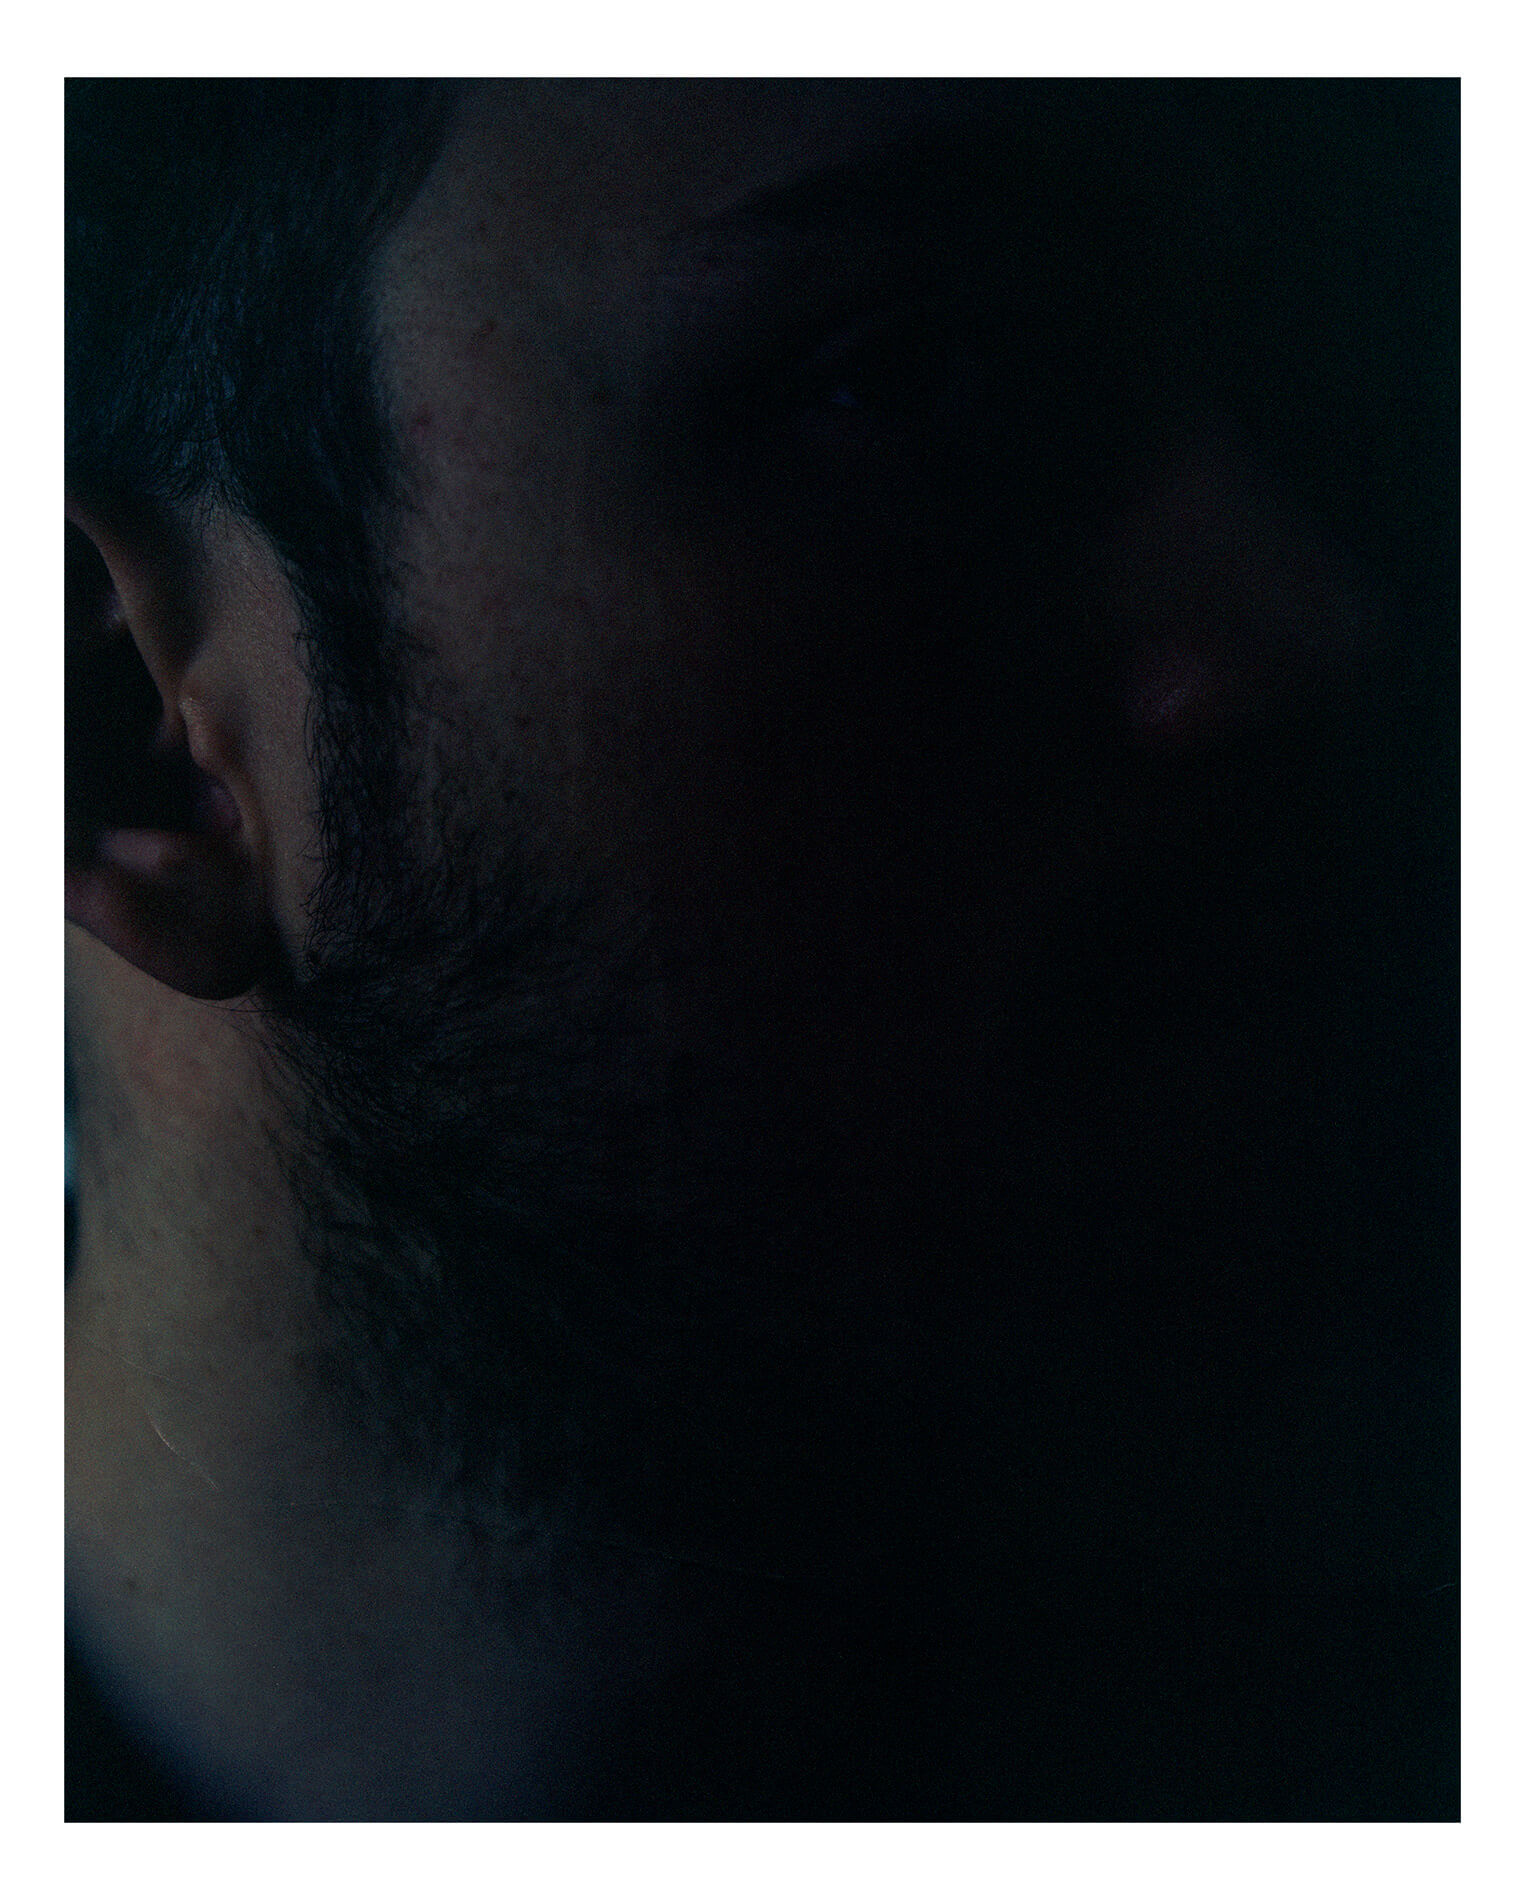 mans face in low light with black background